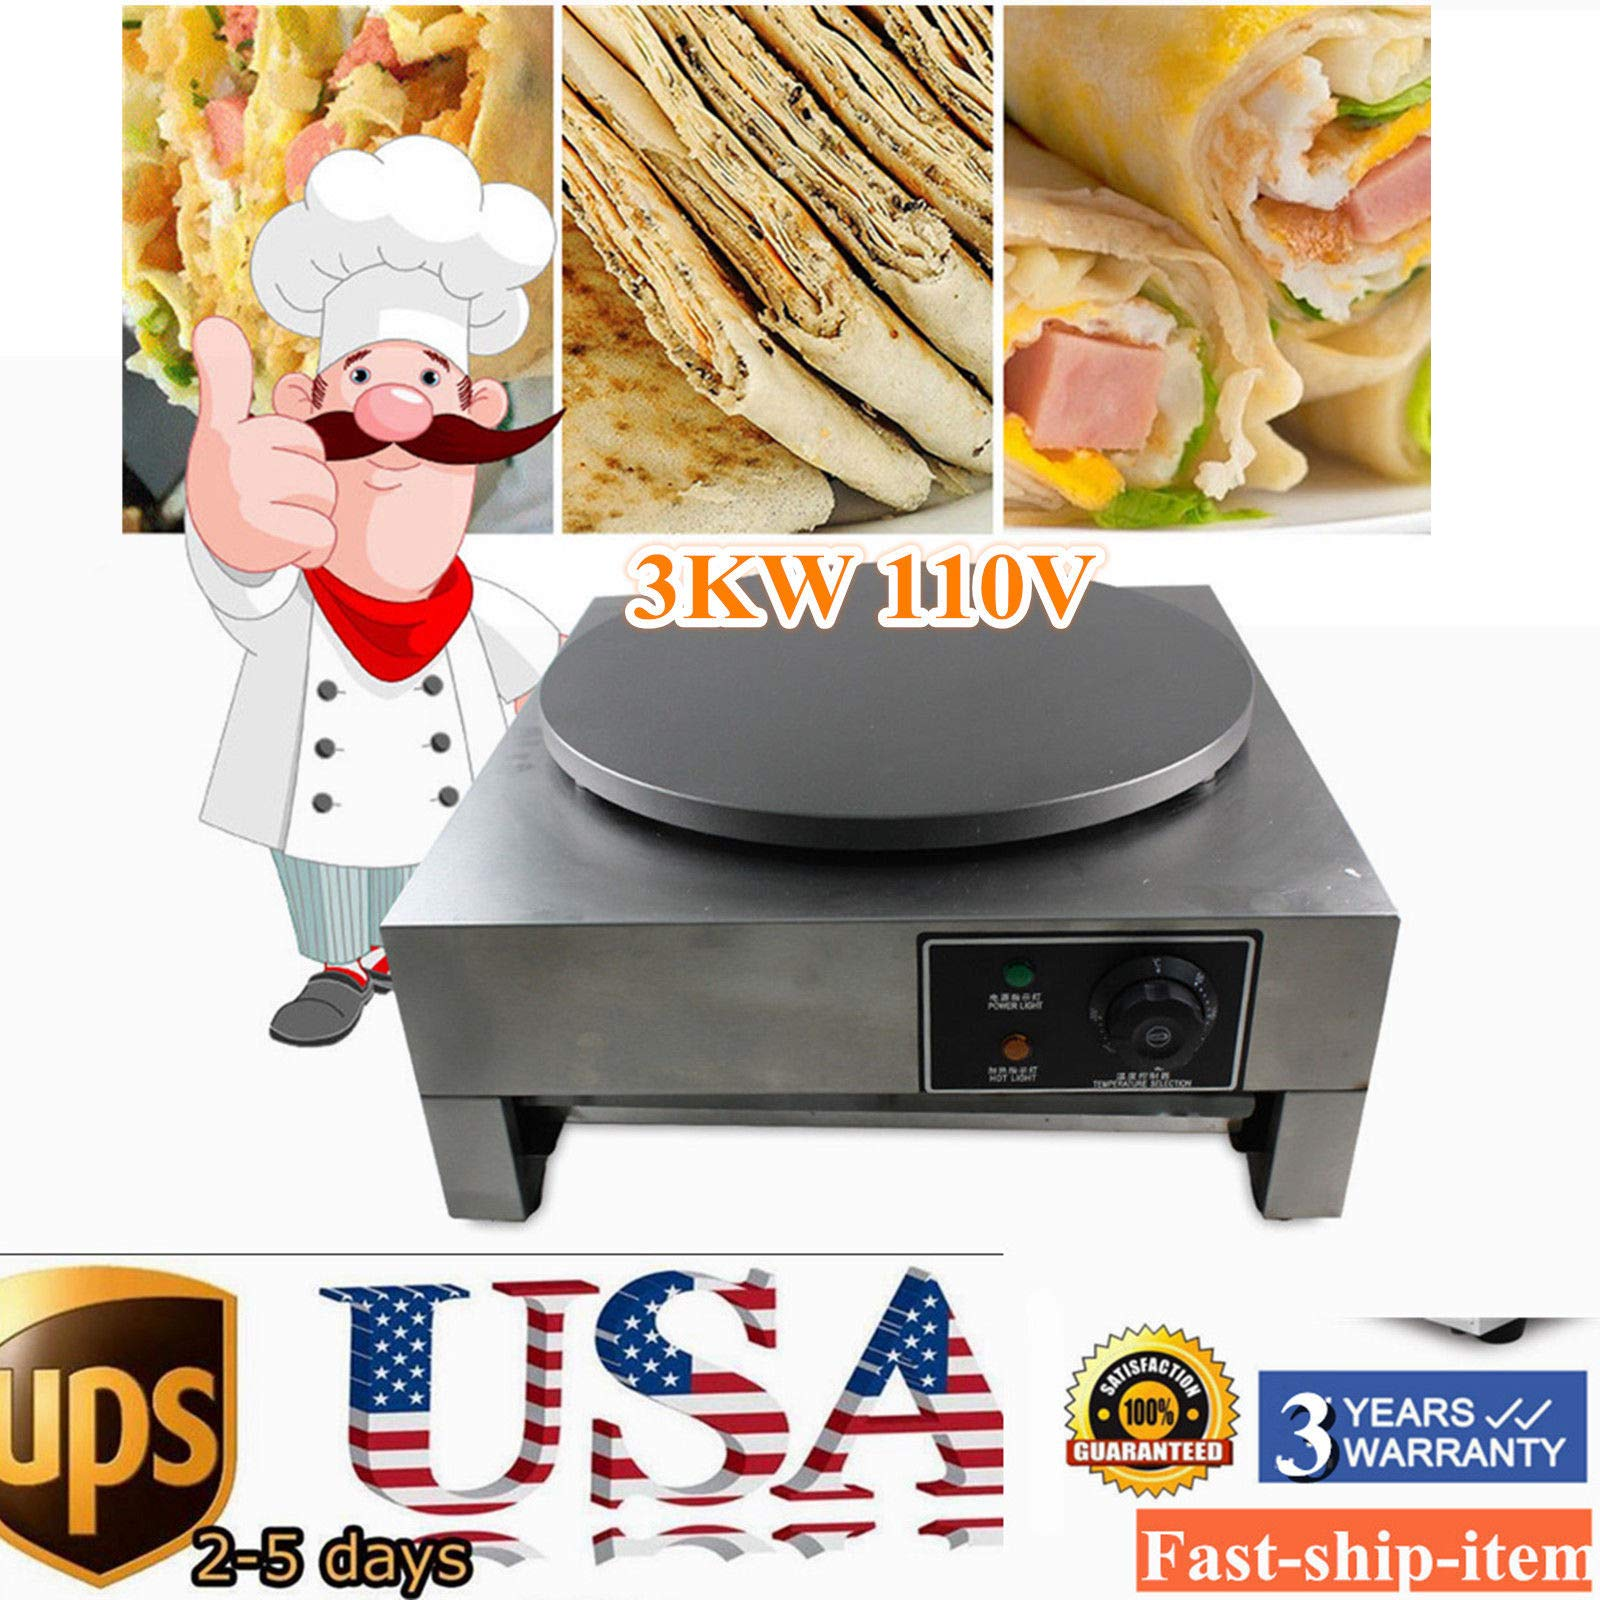 Crepe Maker Machine Pancake Griddle, 3KW 16'' Commercial Nonstick Electric Crepe Maker Pancake Machine Kitchen (US Stock) by GDAE10 (Image #3)